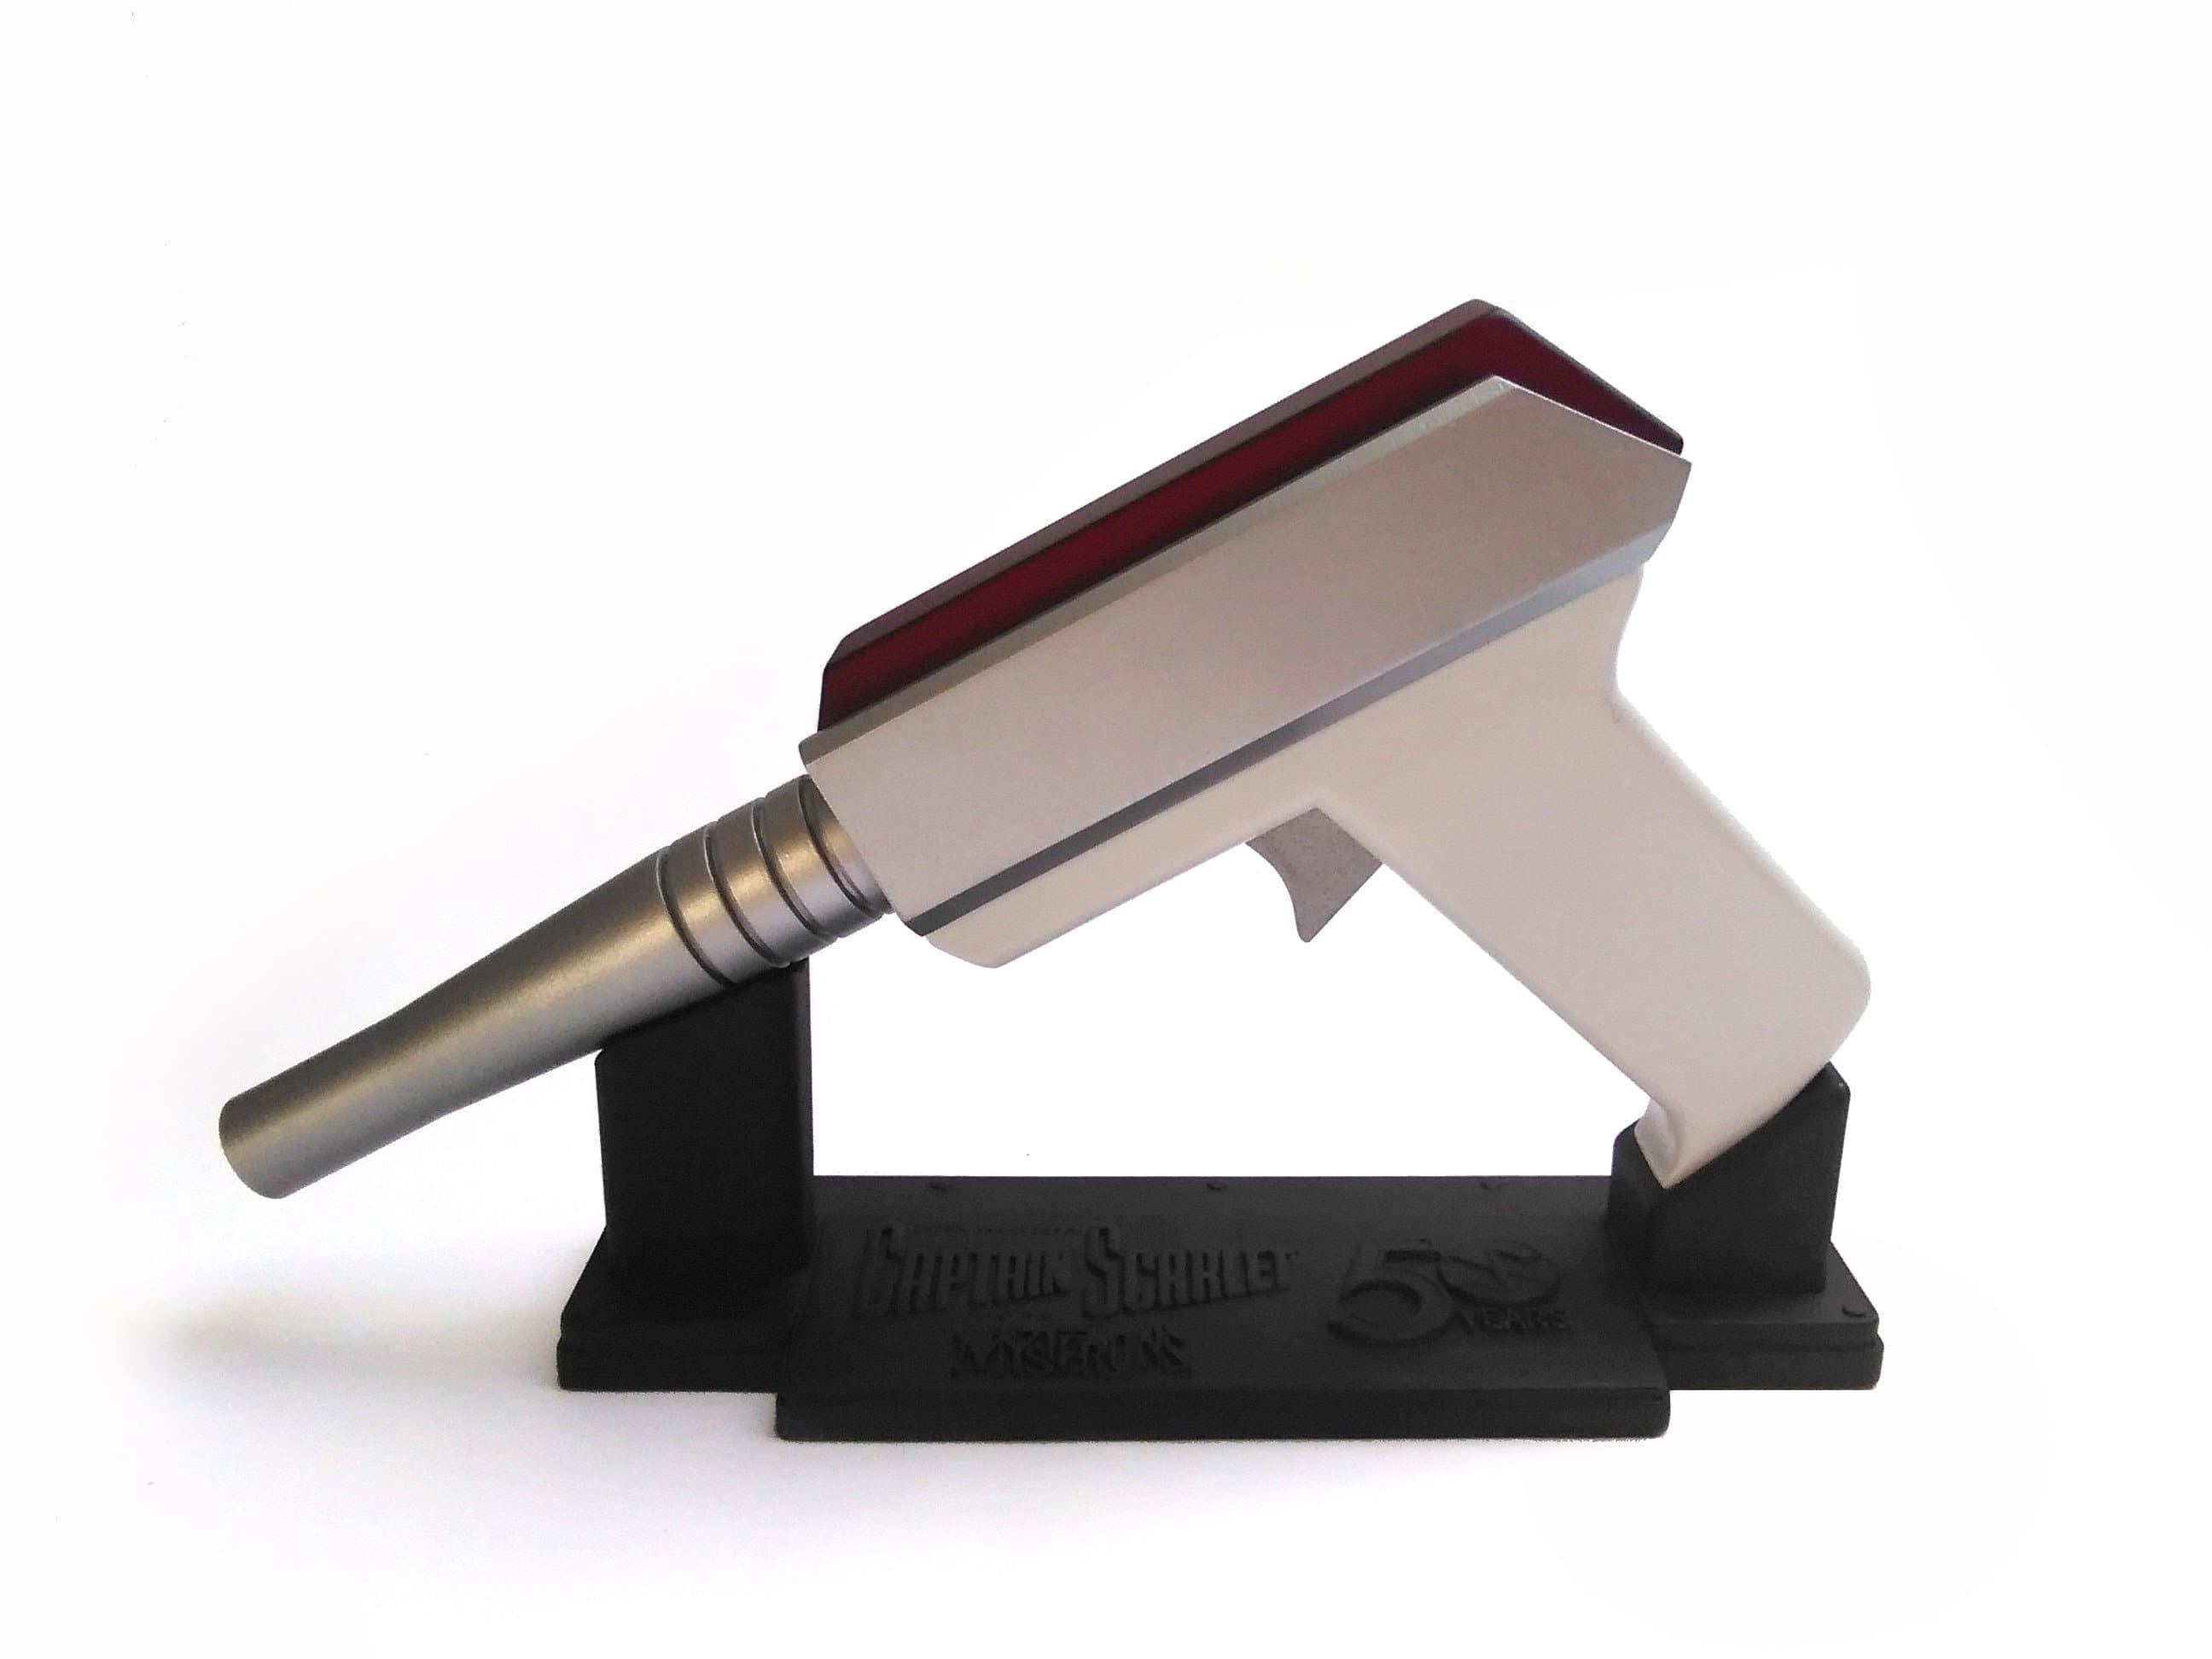 Captain Scarlet Spectrum Agent Pistol Replica [Exclusive - Super Limited & Rare Editions] - The Gerry Anderson Store